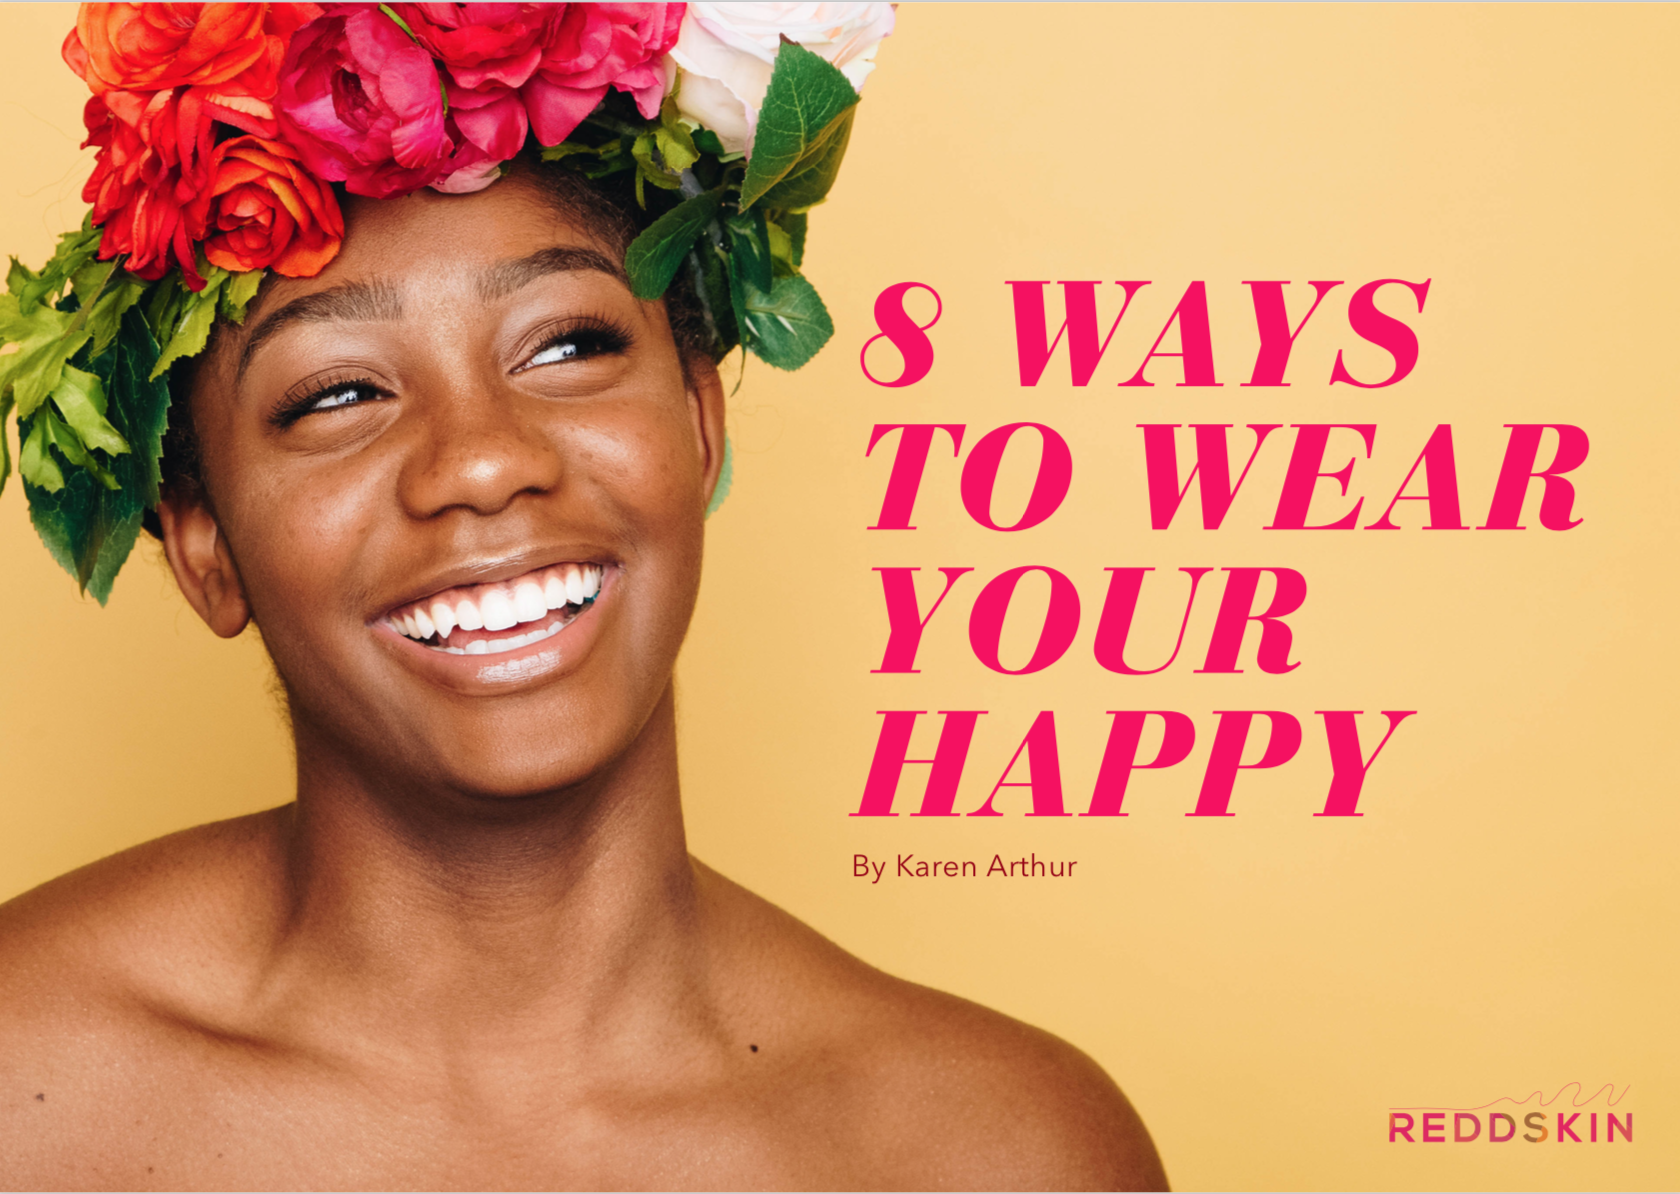 I wrote and published my first e-book - a guide to making conscious fashion choices to uplift mood and aid mental well being. Yay me! July 2018. Buy it  here